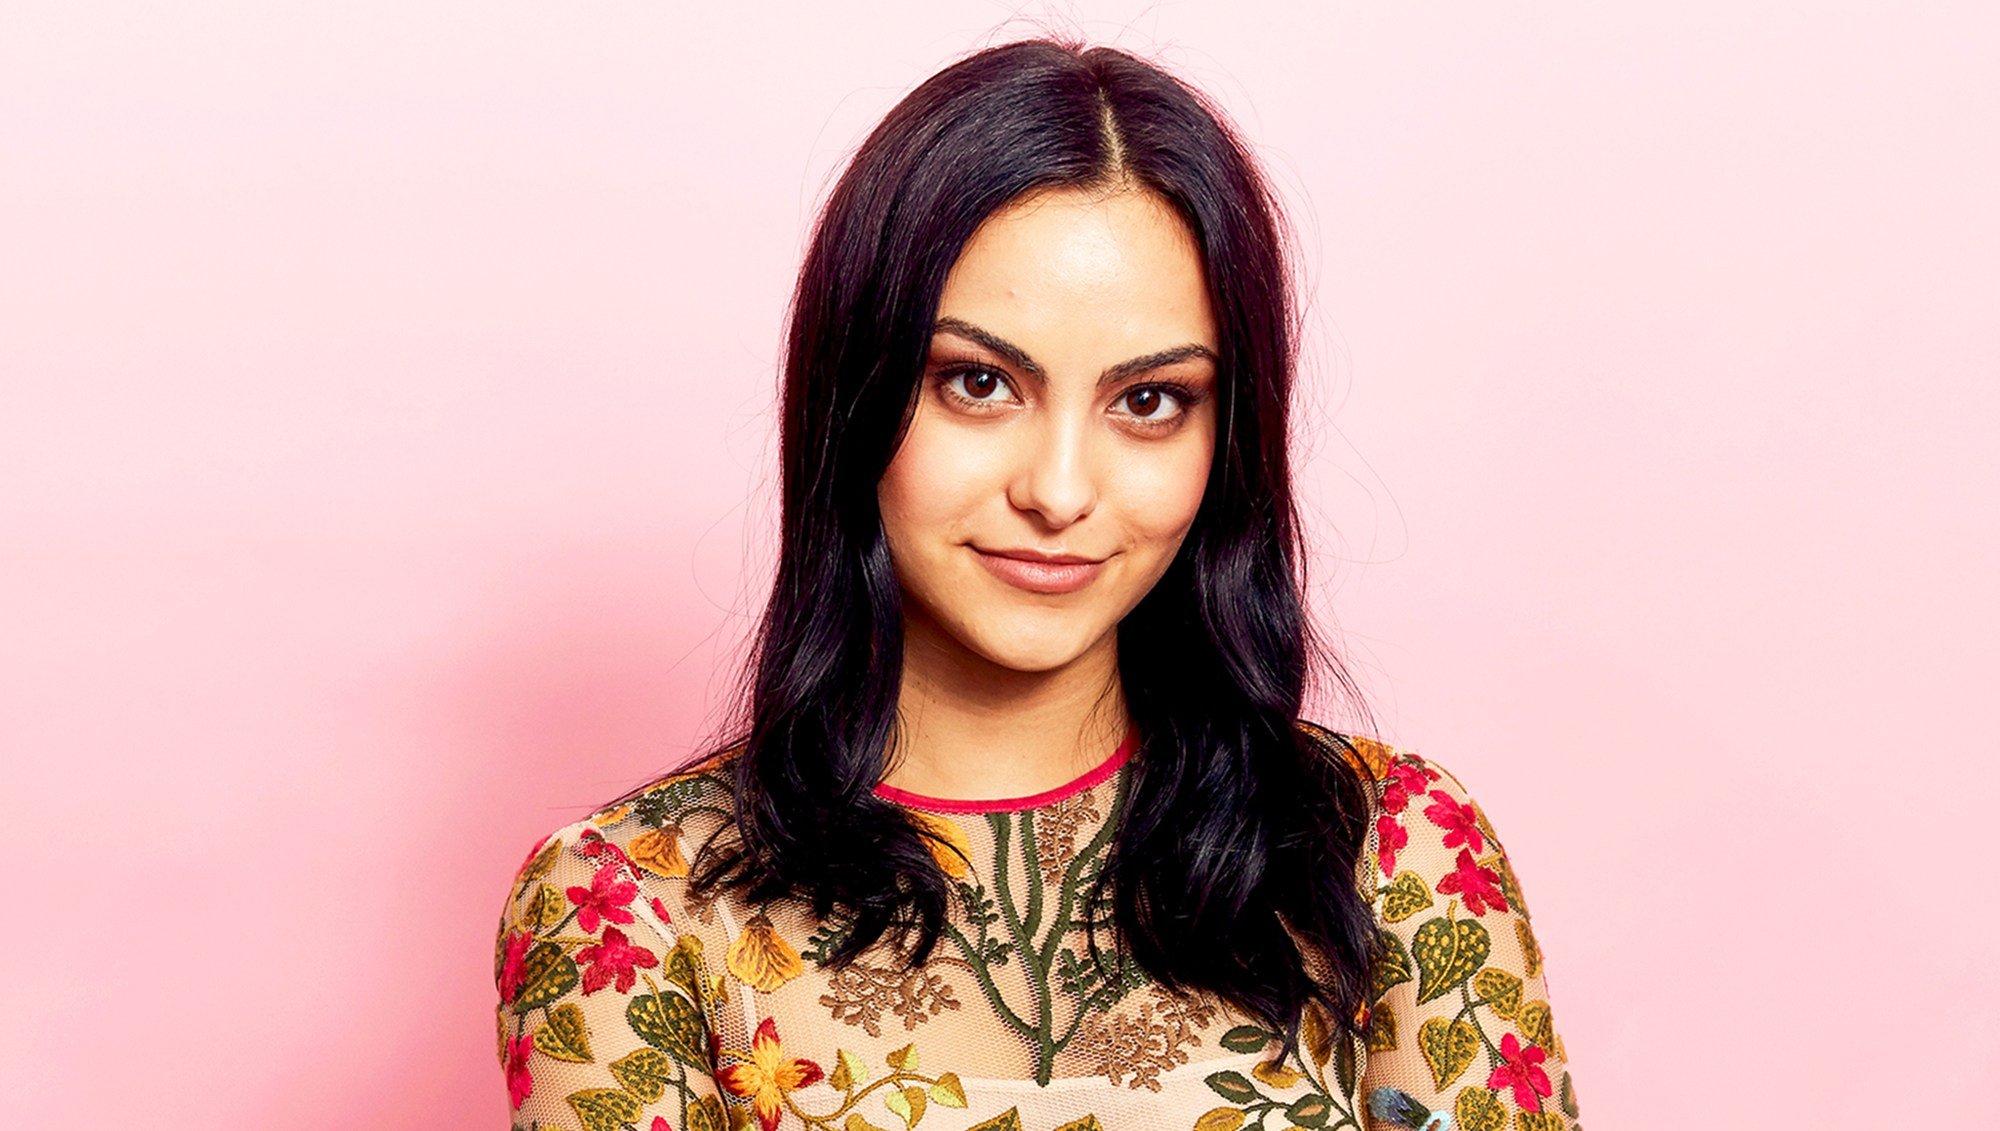 Camila Mendes from CW's 'Riverdale' poses for a portrait during Comic-Con 2017 at Hard Rock Hotel in San Diego, California.